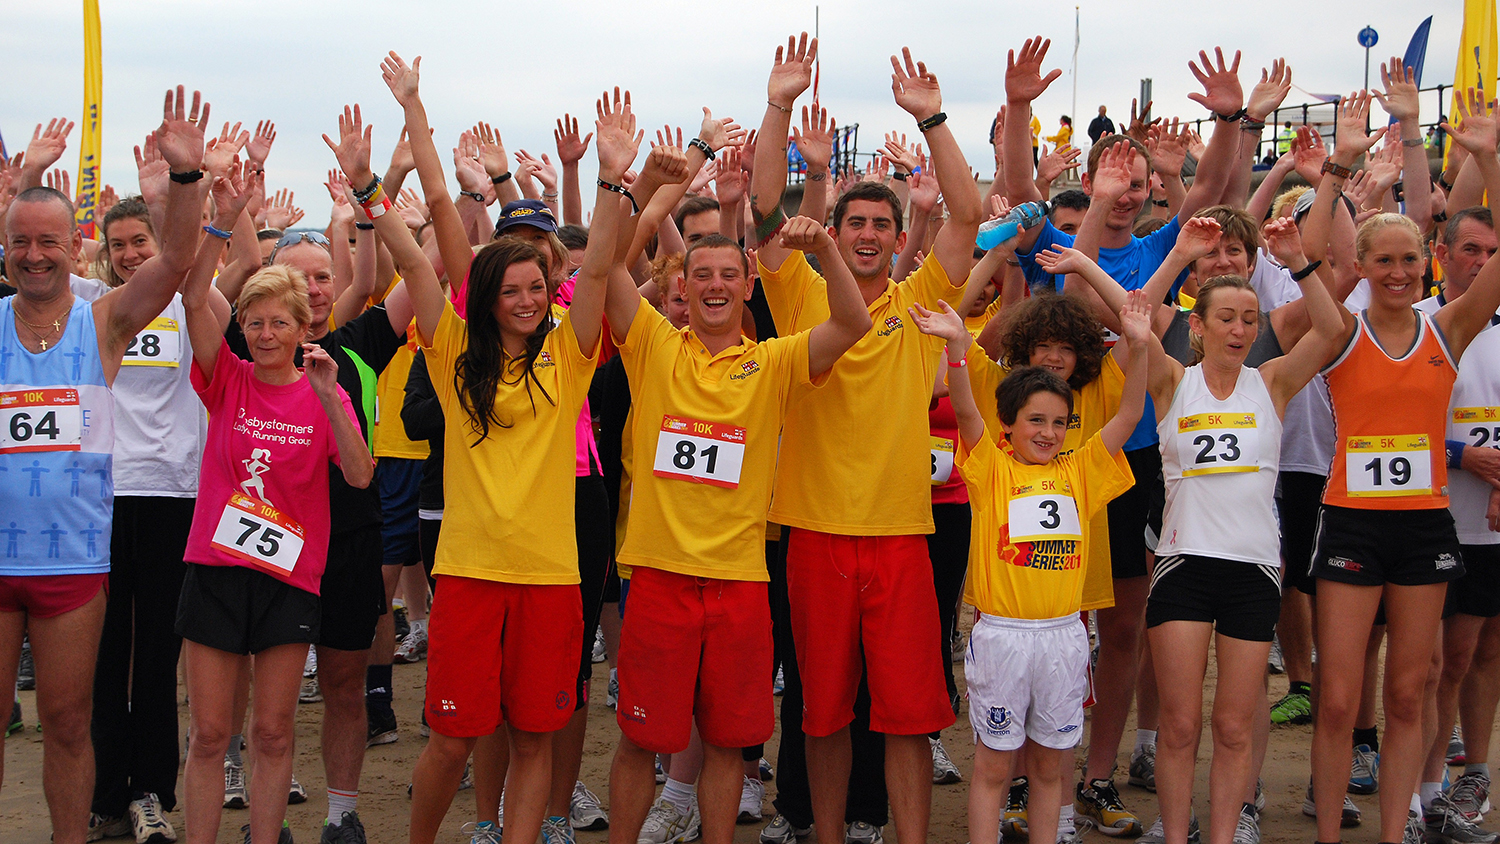 RNLI lifeguards and runners warming up at a Summer Sprint event at Crosby Beach